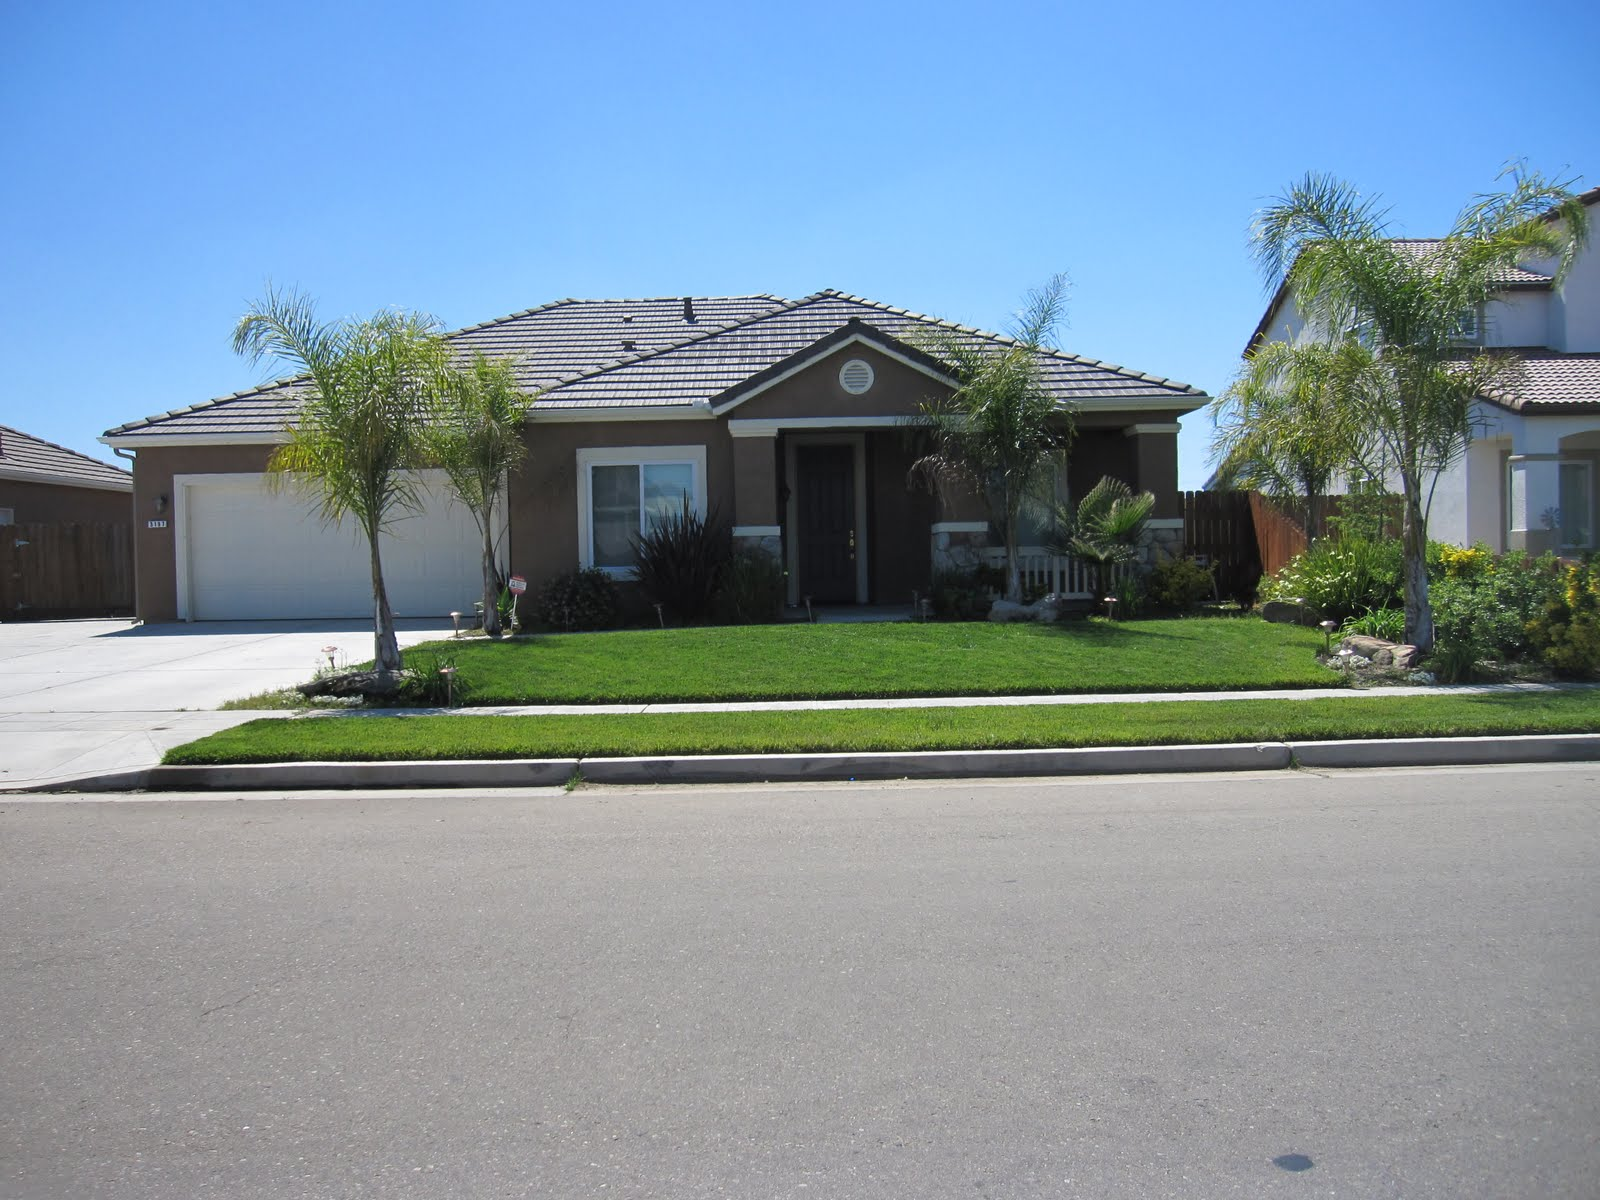 We packed up our house in fresno in one week with the help of some